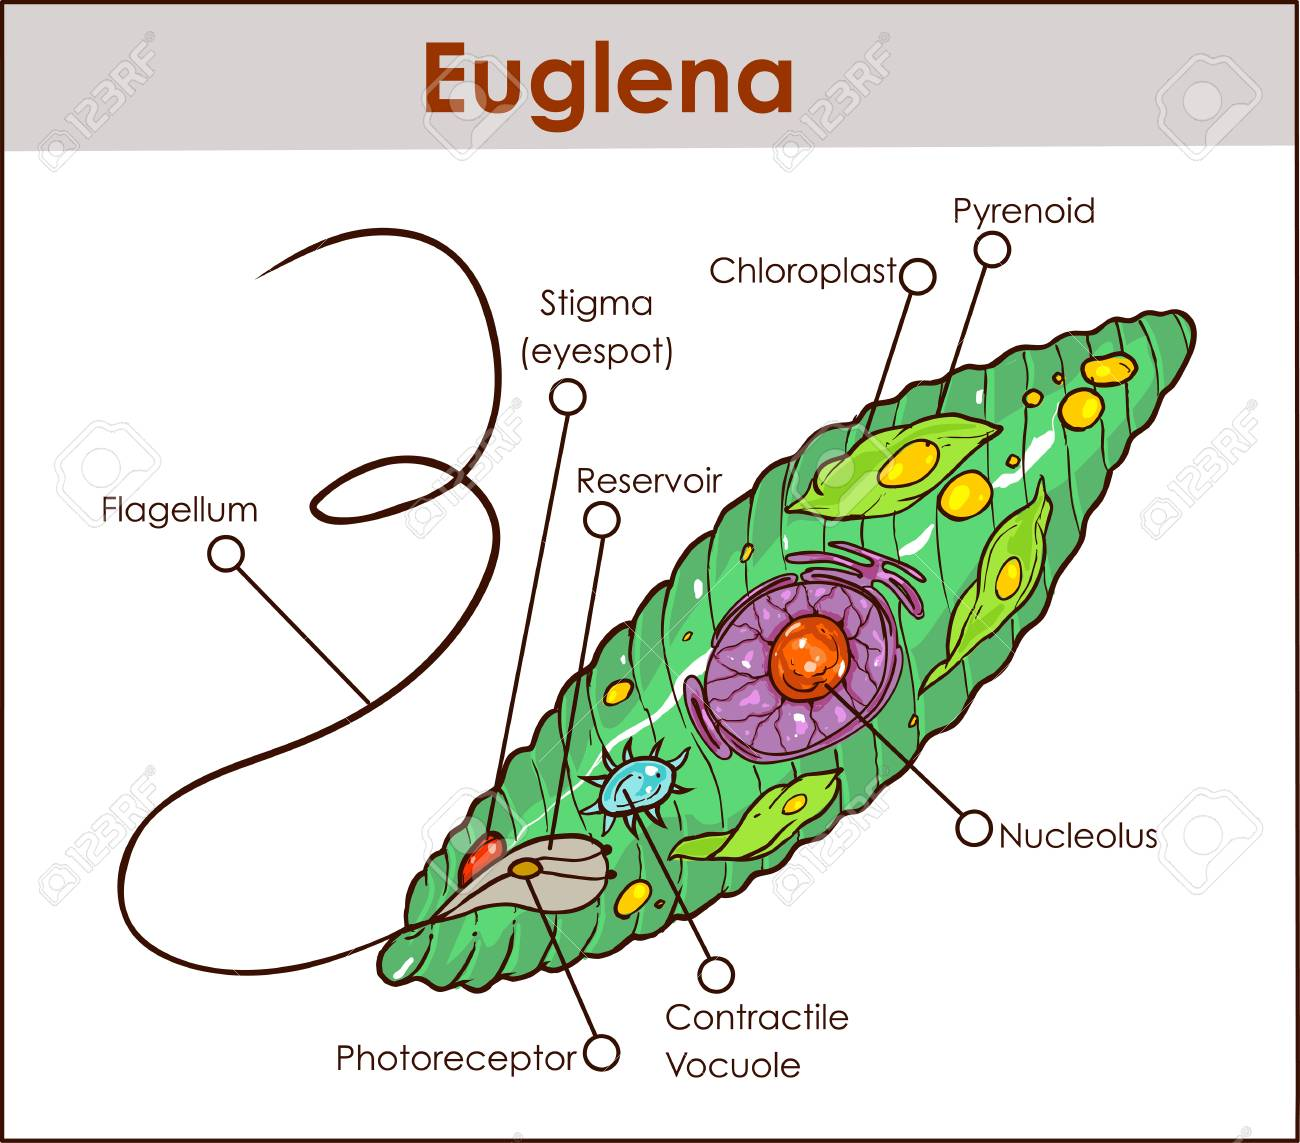 Tha Diagram Of Euglena Wiring Diagram